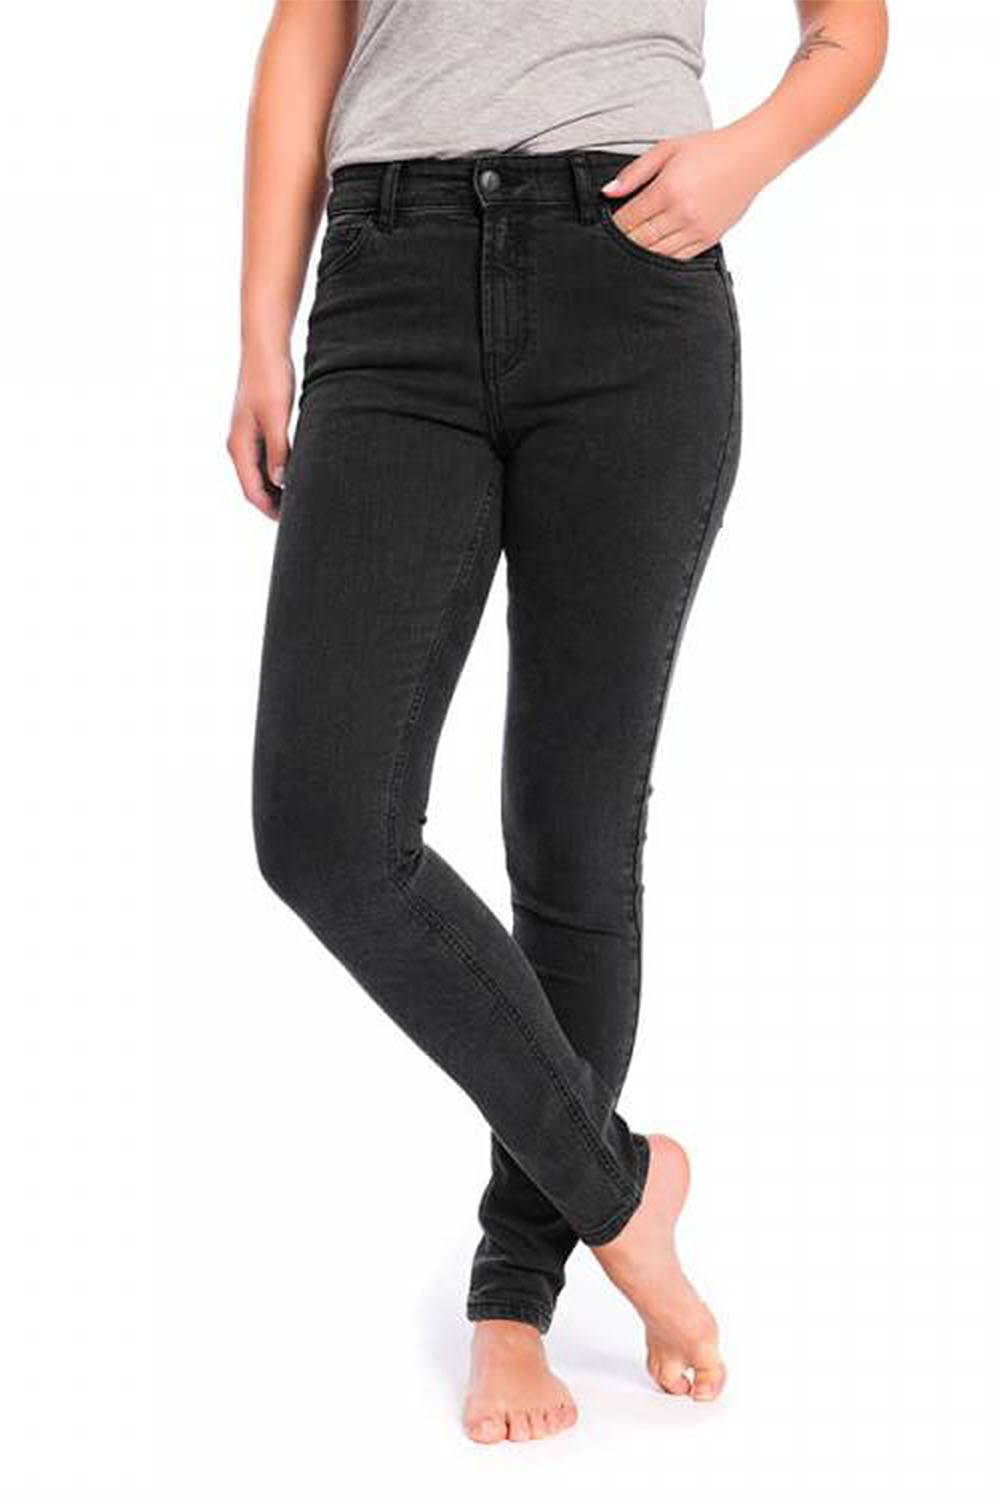 bleed clothing affordable lyocell jeans